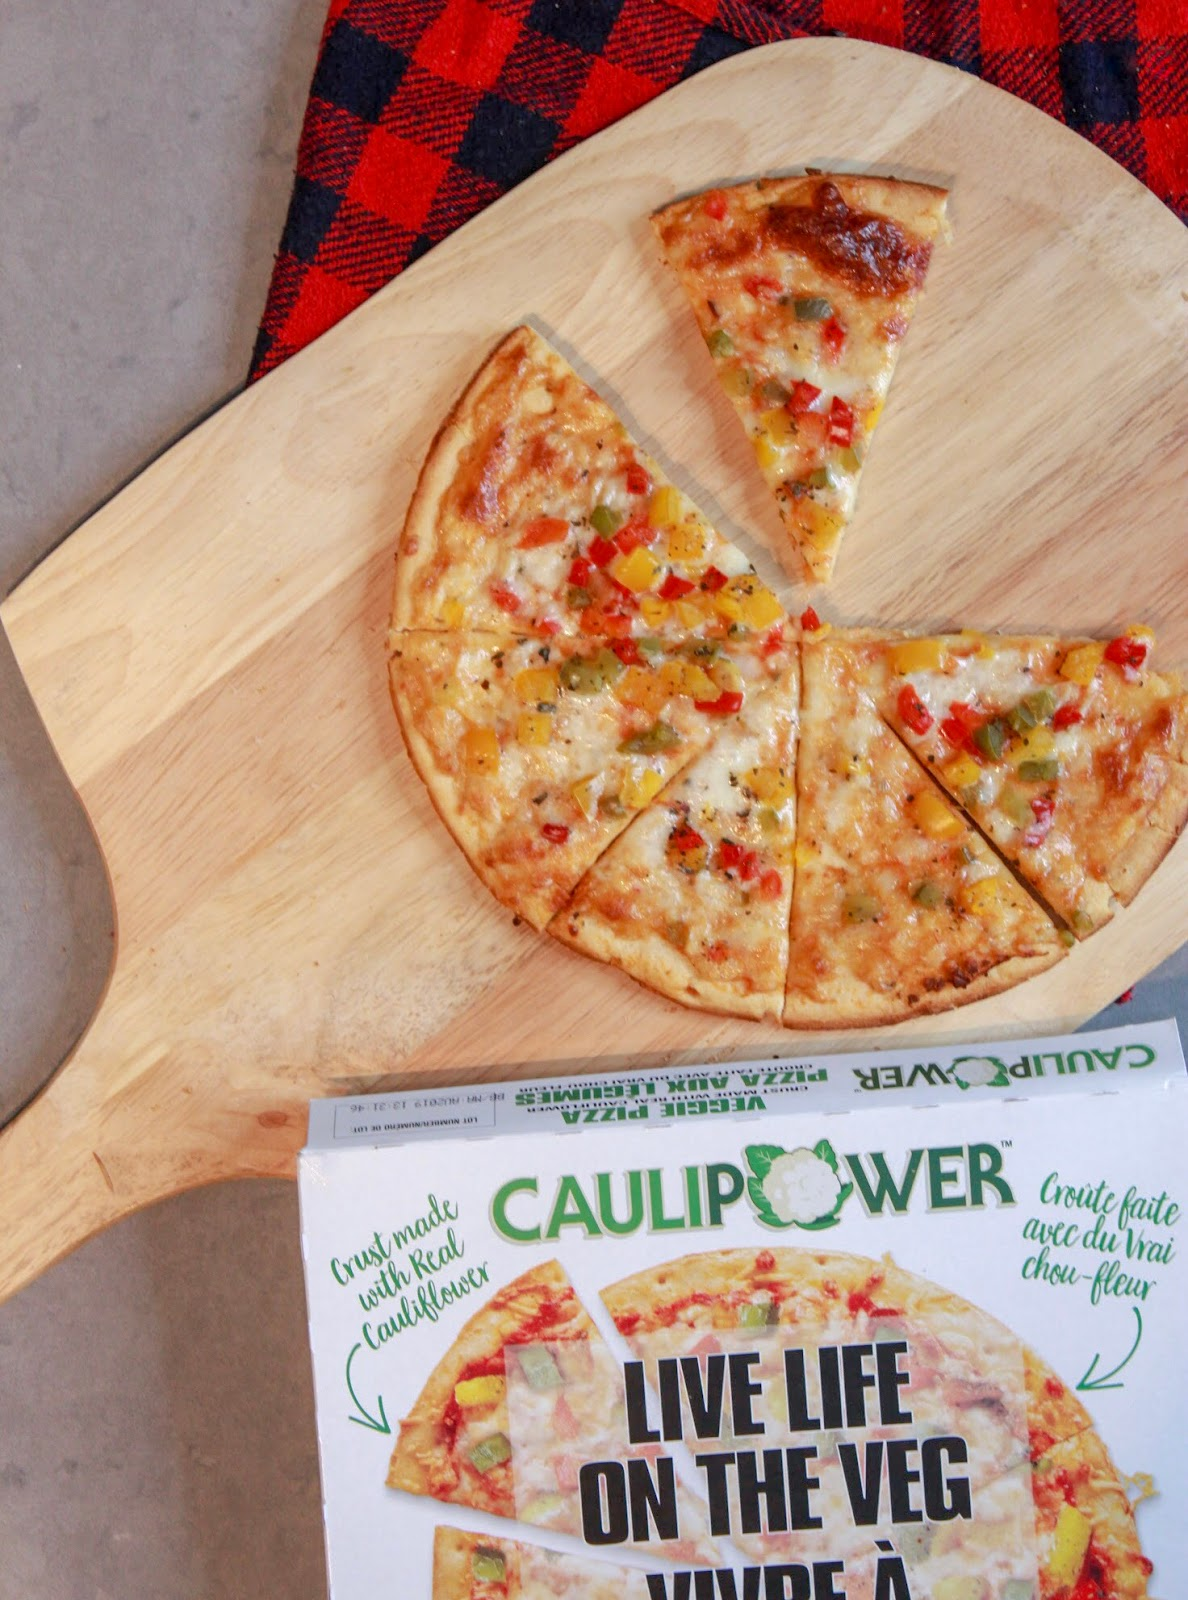 Veggie CAULIPOWER pizza with cauliflower crust